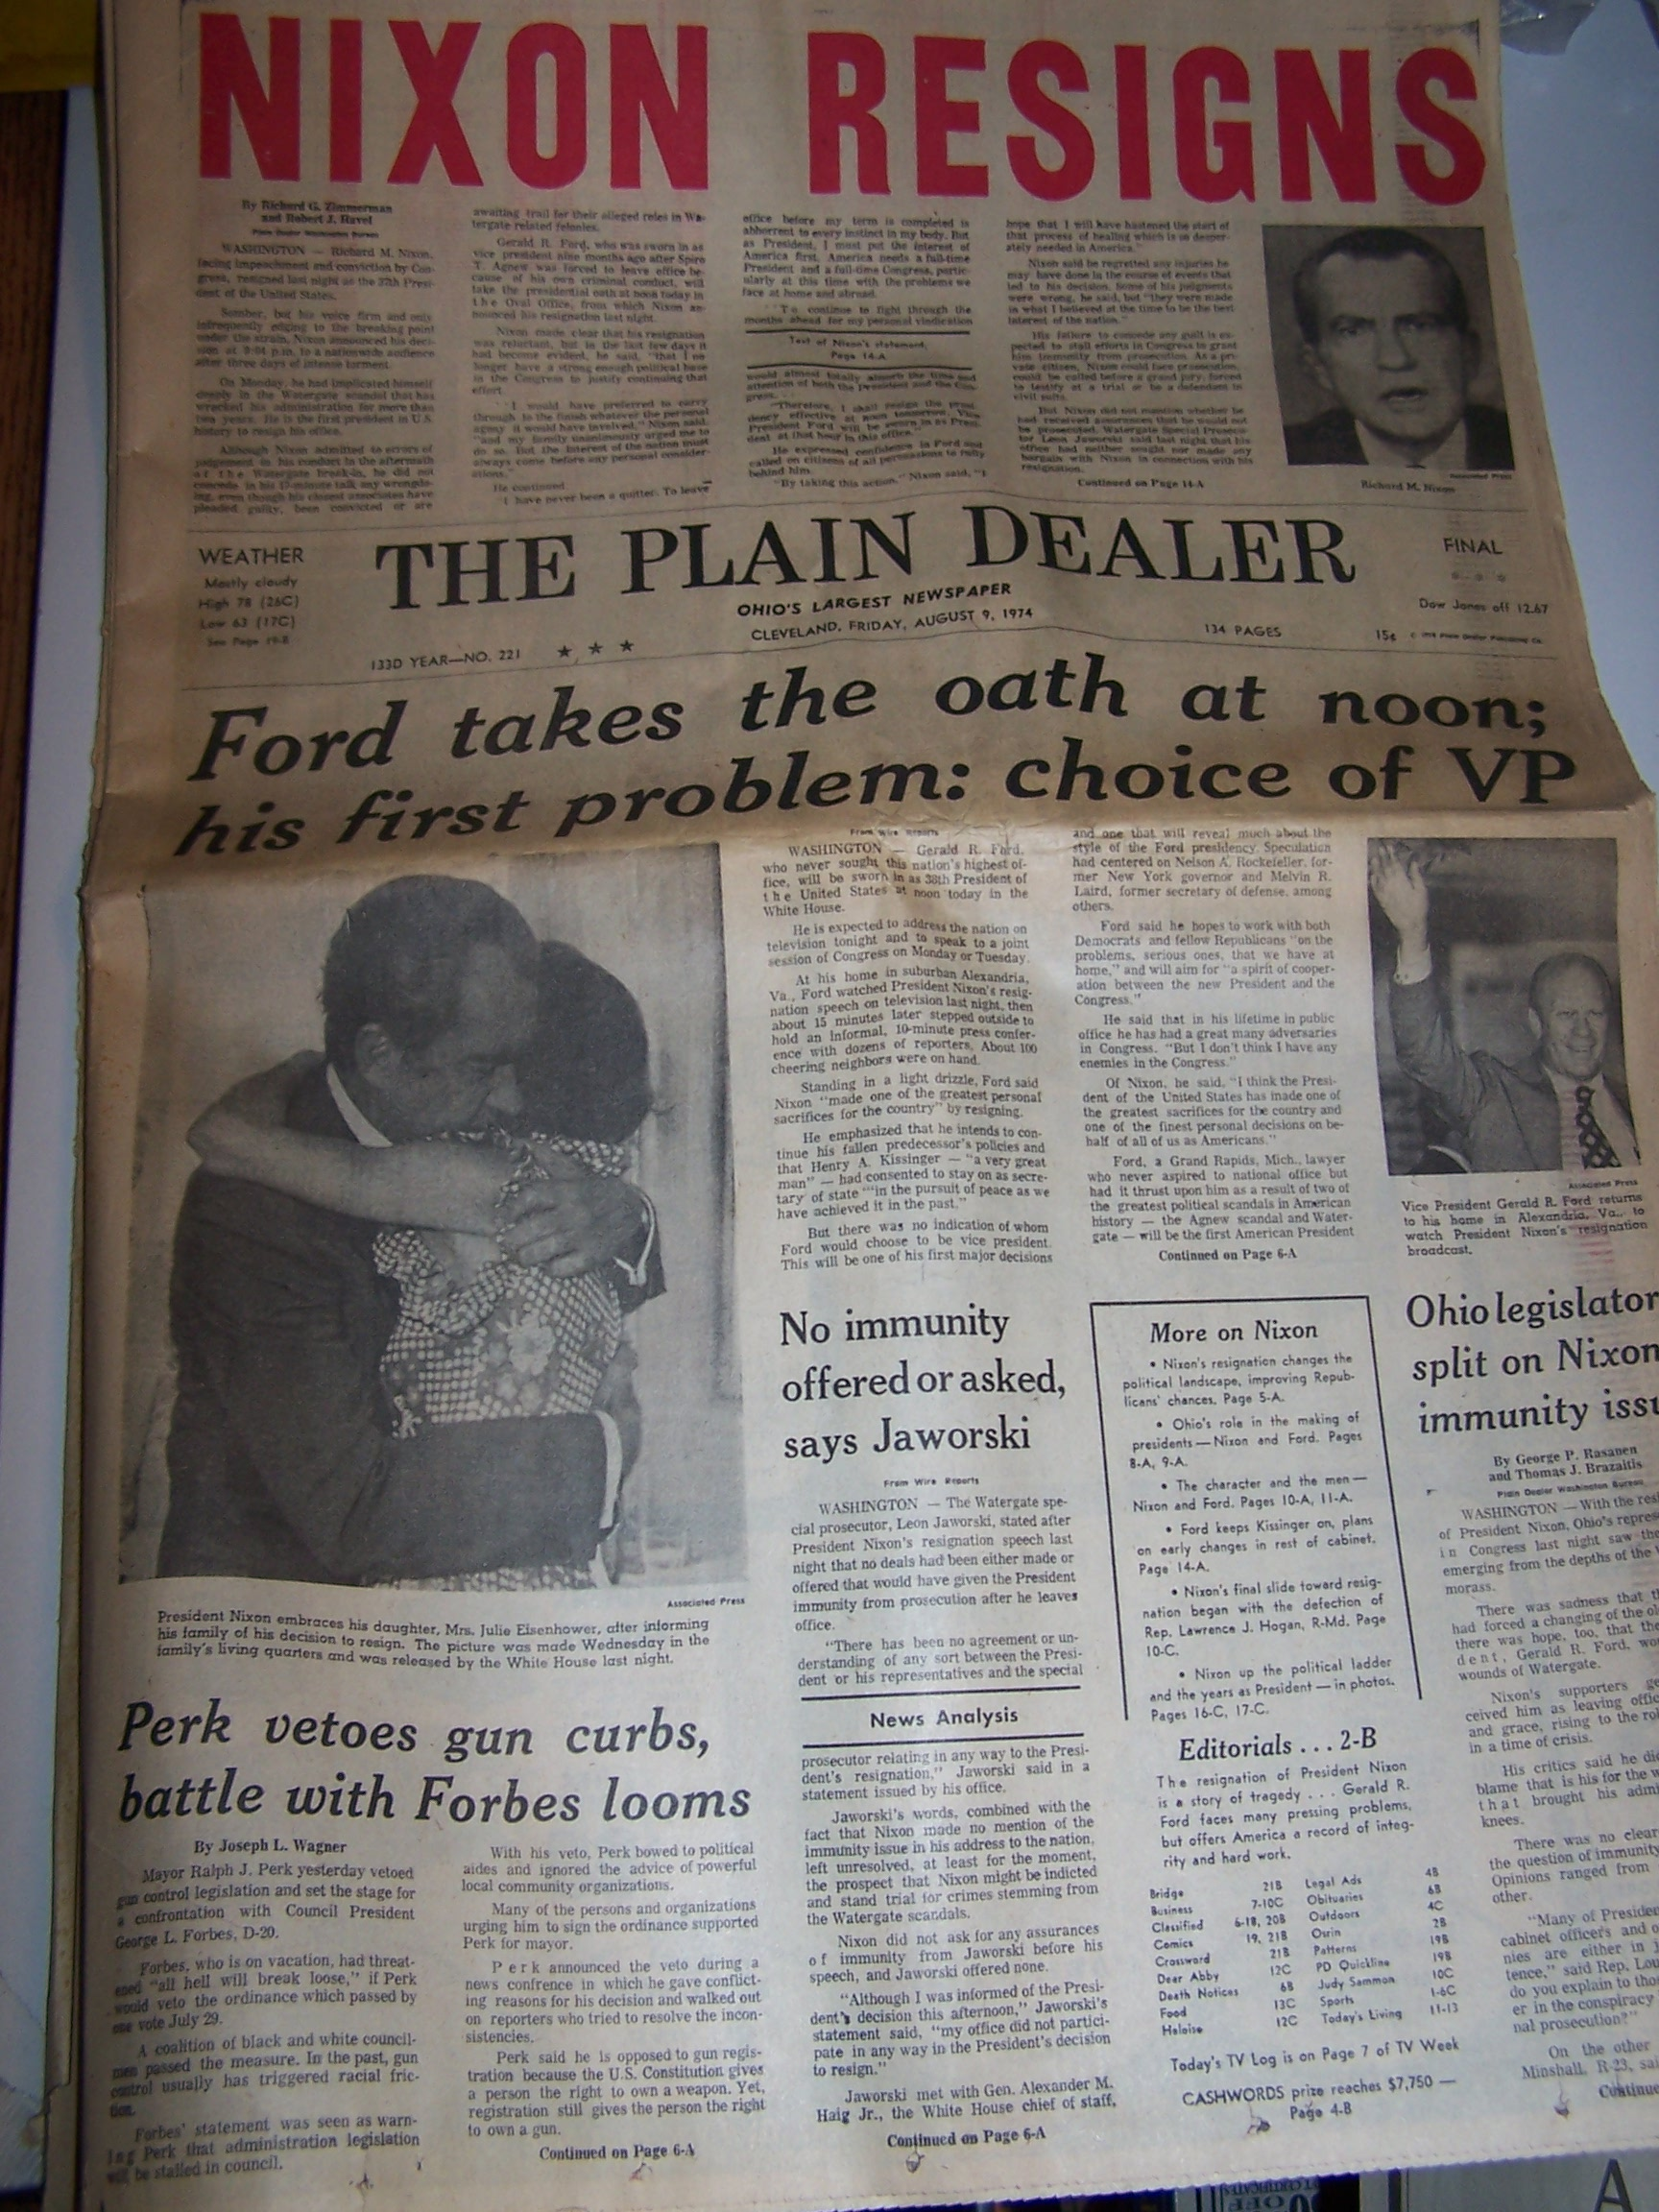 Image 1 of Nixon Resigns, Ford Takes Oath, 1974 Cleveland Plain Dealer